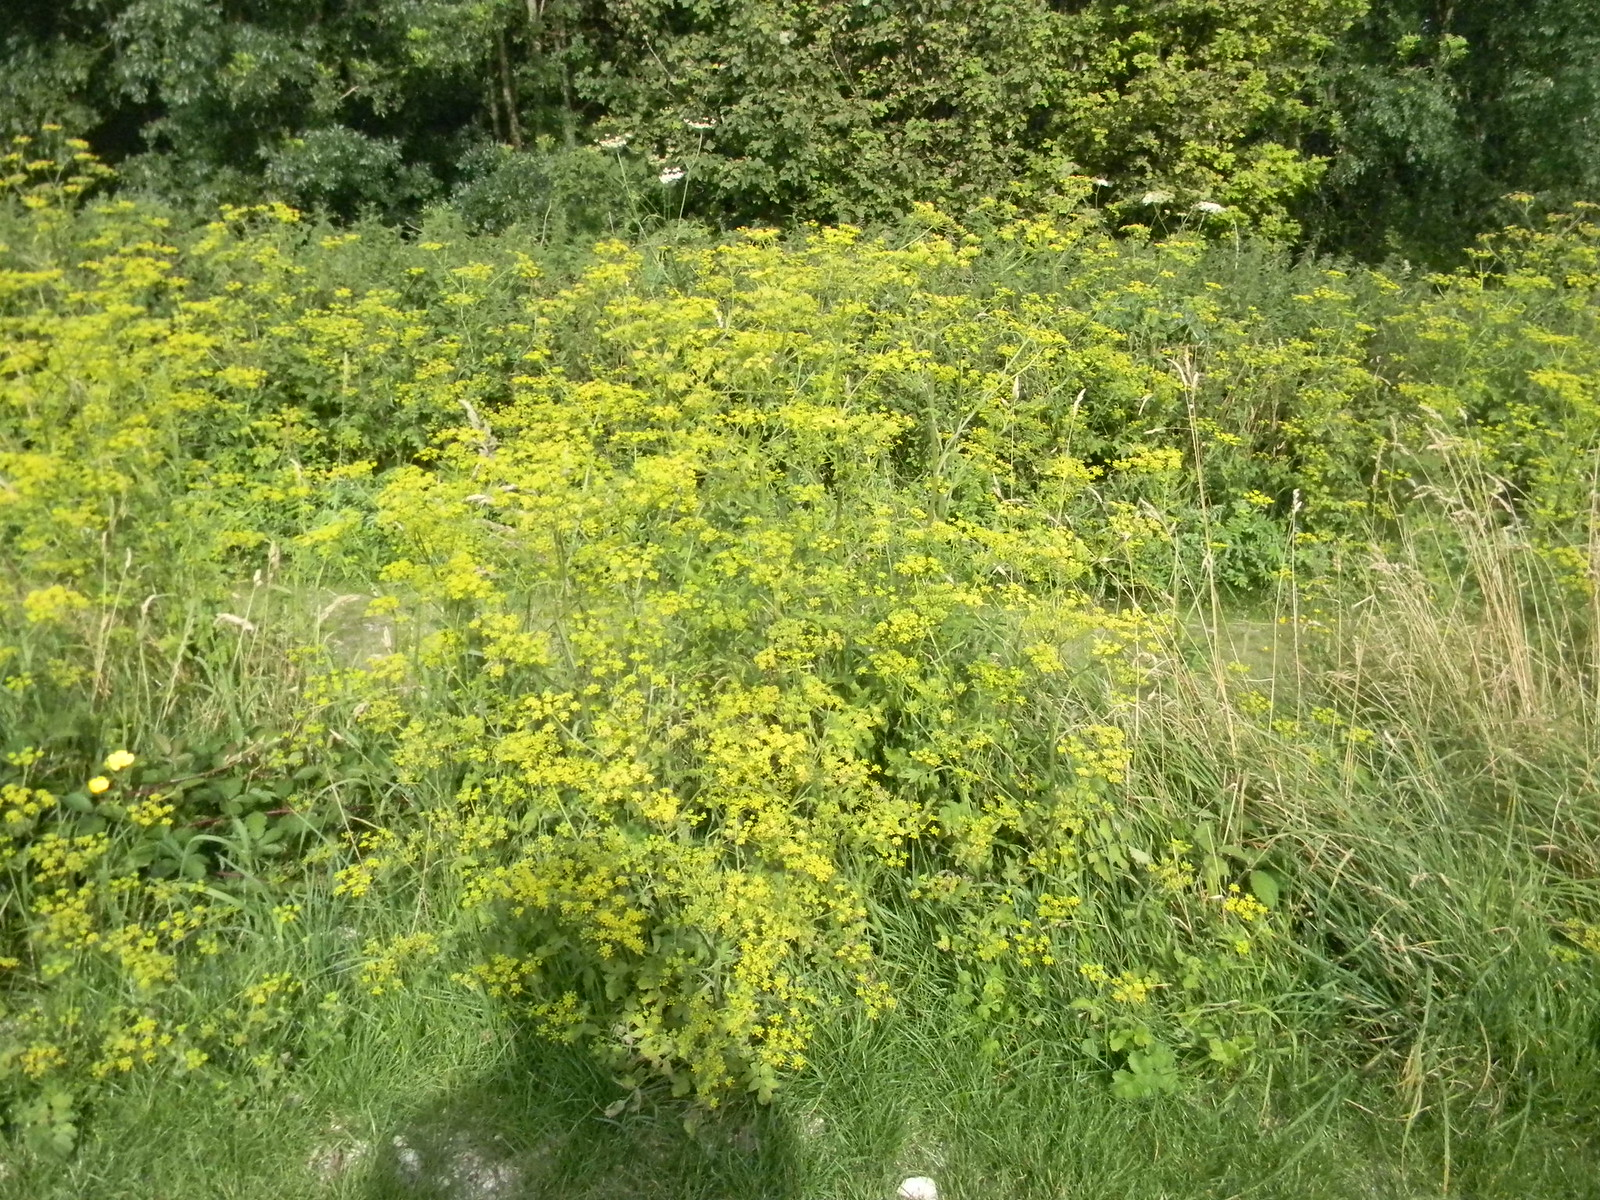 Wild Parsnip The wild version of the edible parsnip.(Not the American version of Giant Hogweed) Amberley to Shoreham